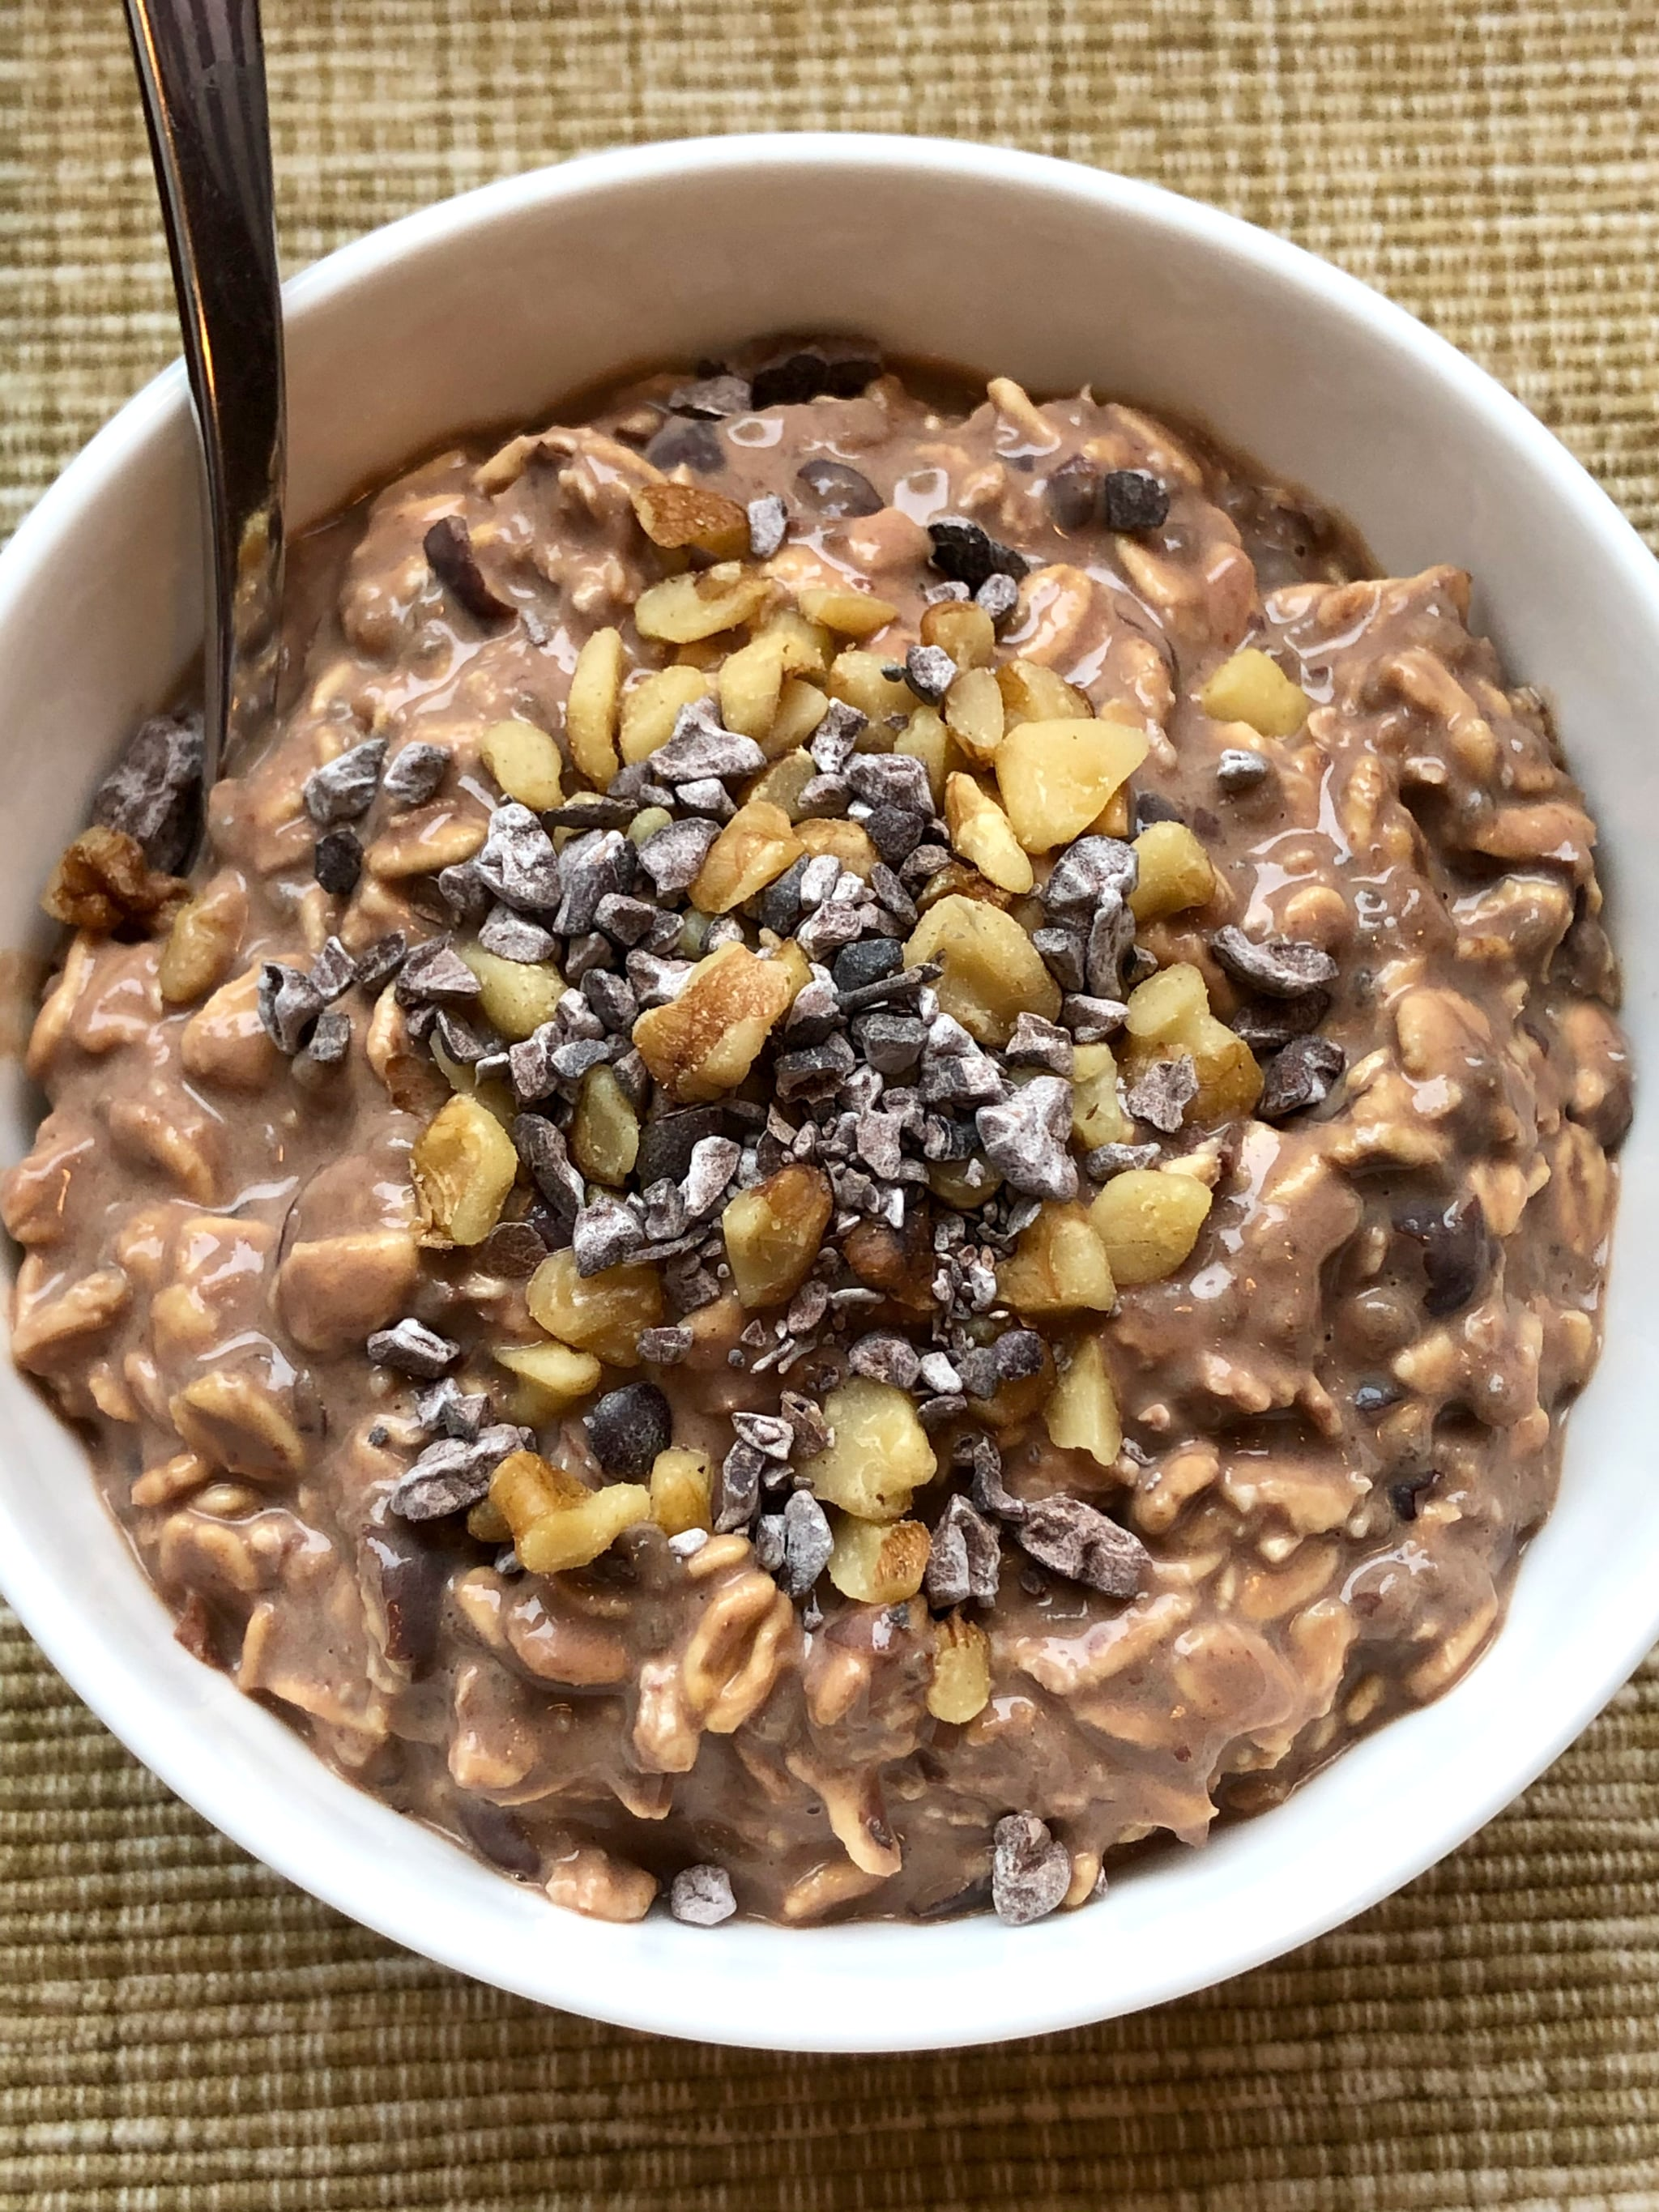 These Chocolate Walnut Brownie Overnight Oats Offer 17 Grams of Protein (No Protein Powder!)